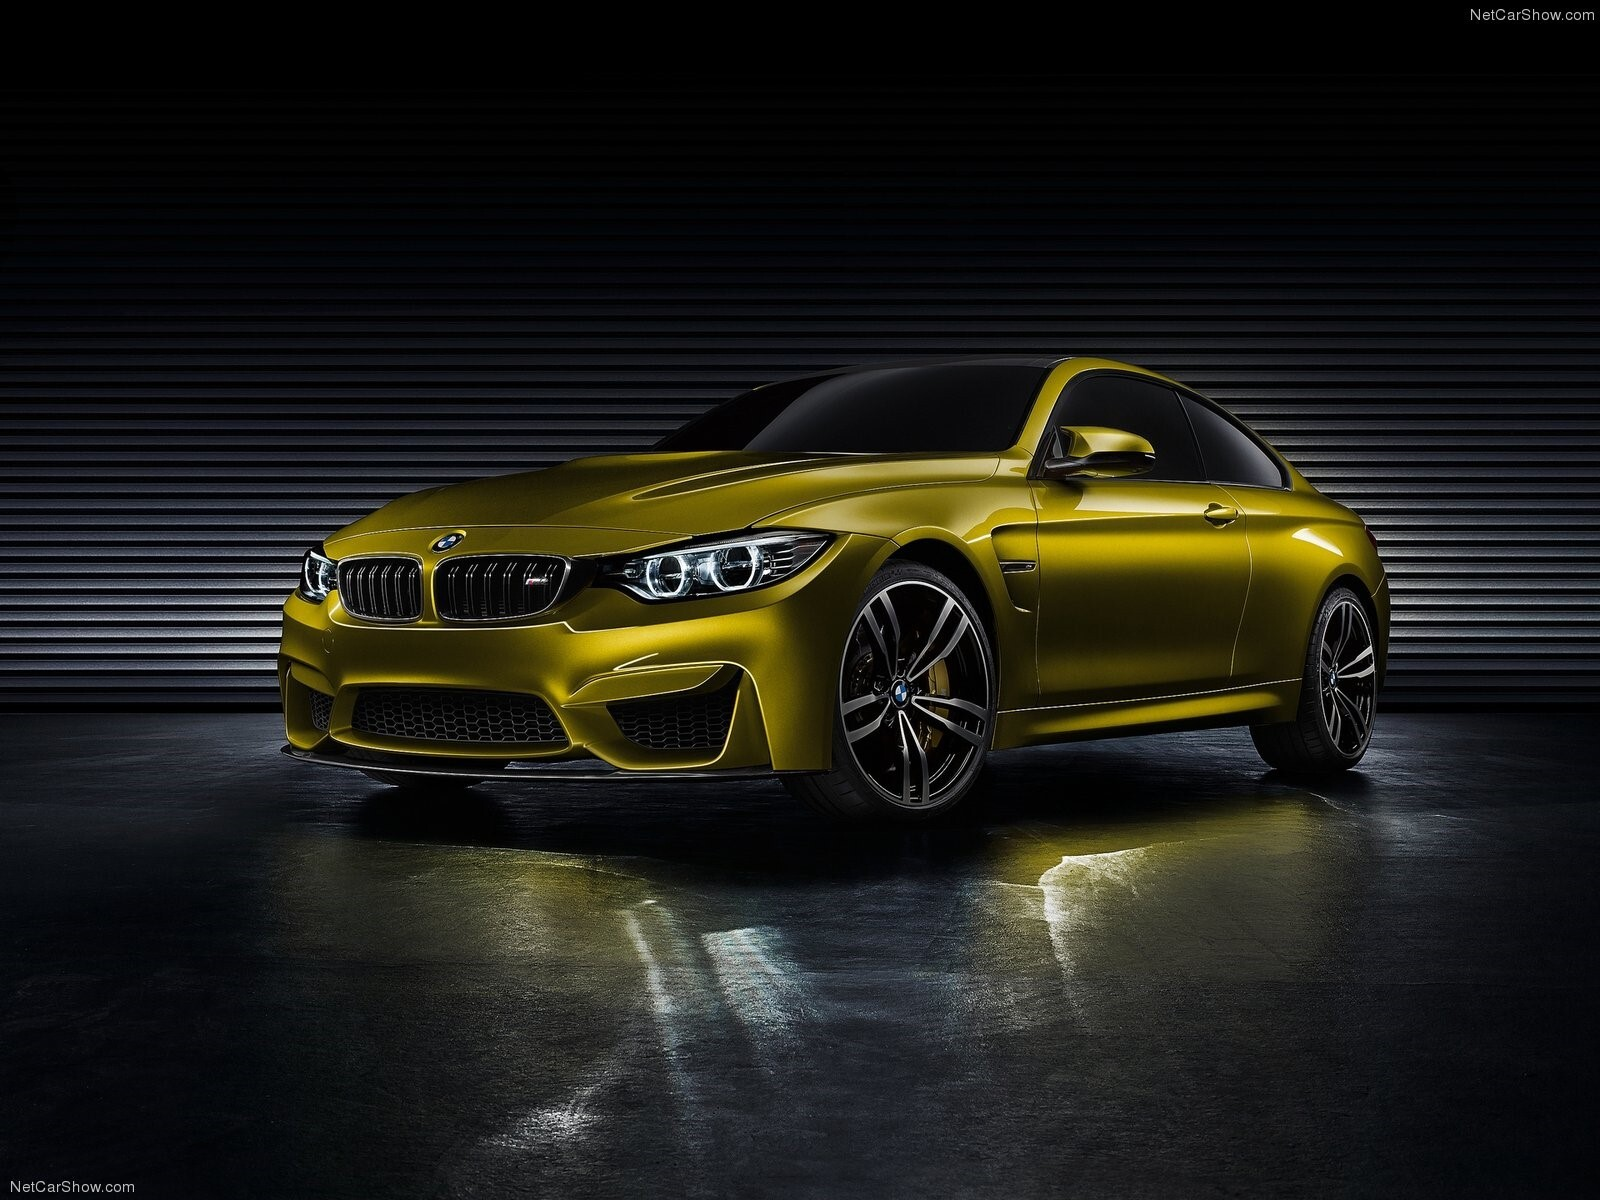 Bmw m4 coupe concept car 2013 wallpapers hd wallpapers bmw m4 coupe concept car 2013 wallpapers voltagebd Images